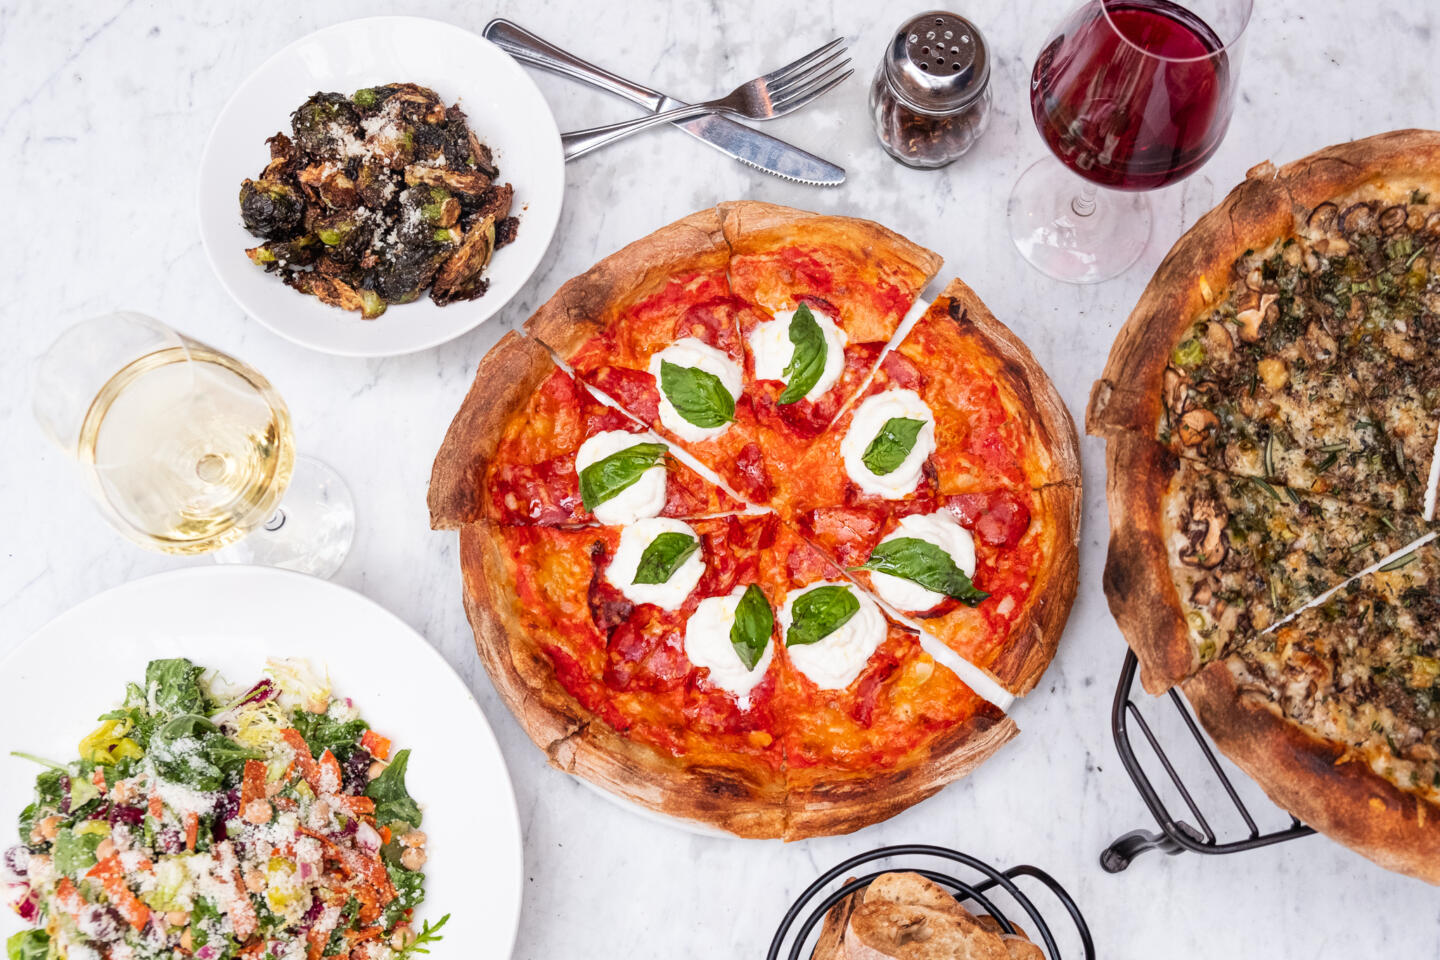 Pizzas and apps at Stella Barra